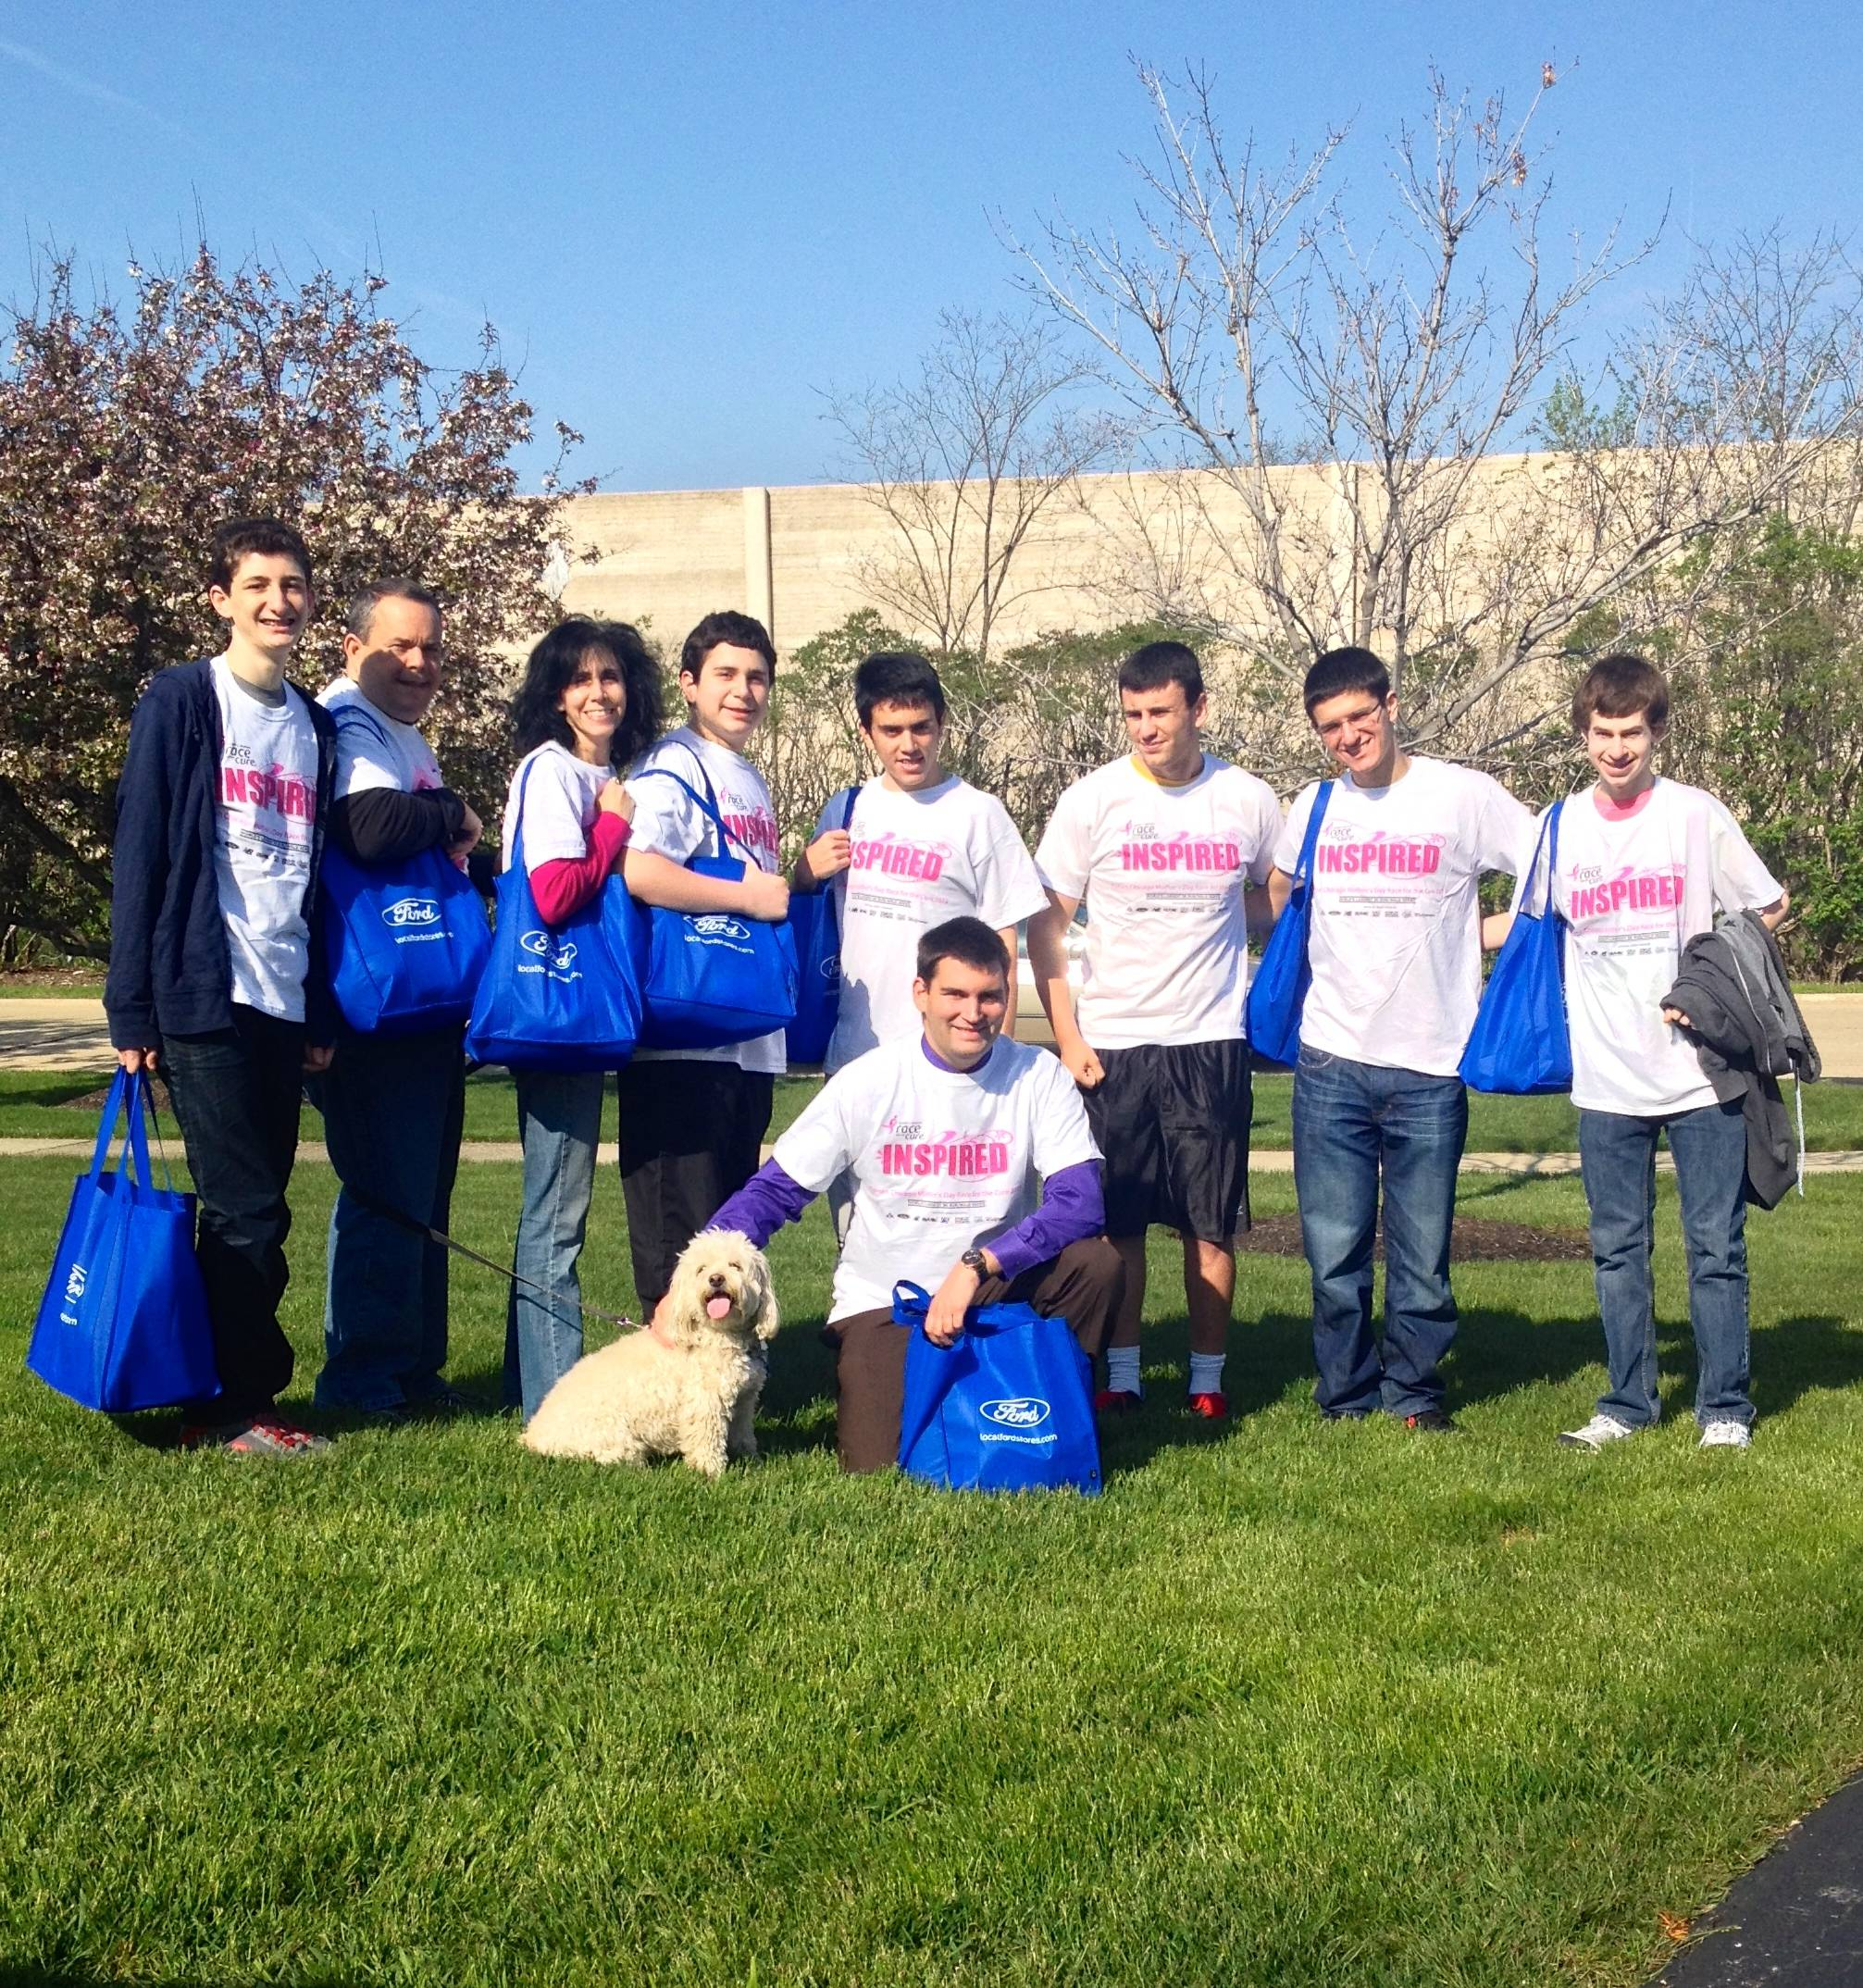 Volunteers wearing 'Inspire' shirts from Susan G Komen get ready to go out and deliver Lox Boxes to the Chicagoland communityBBYO